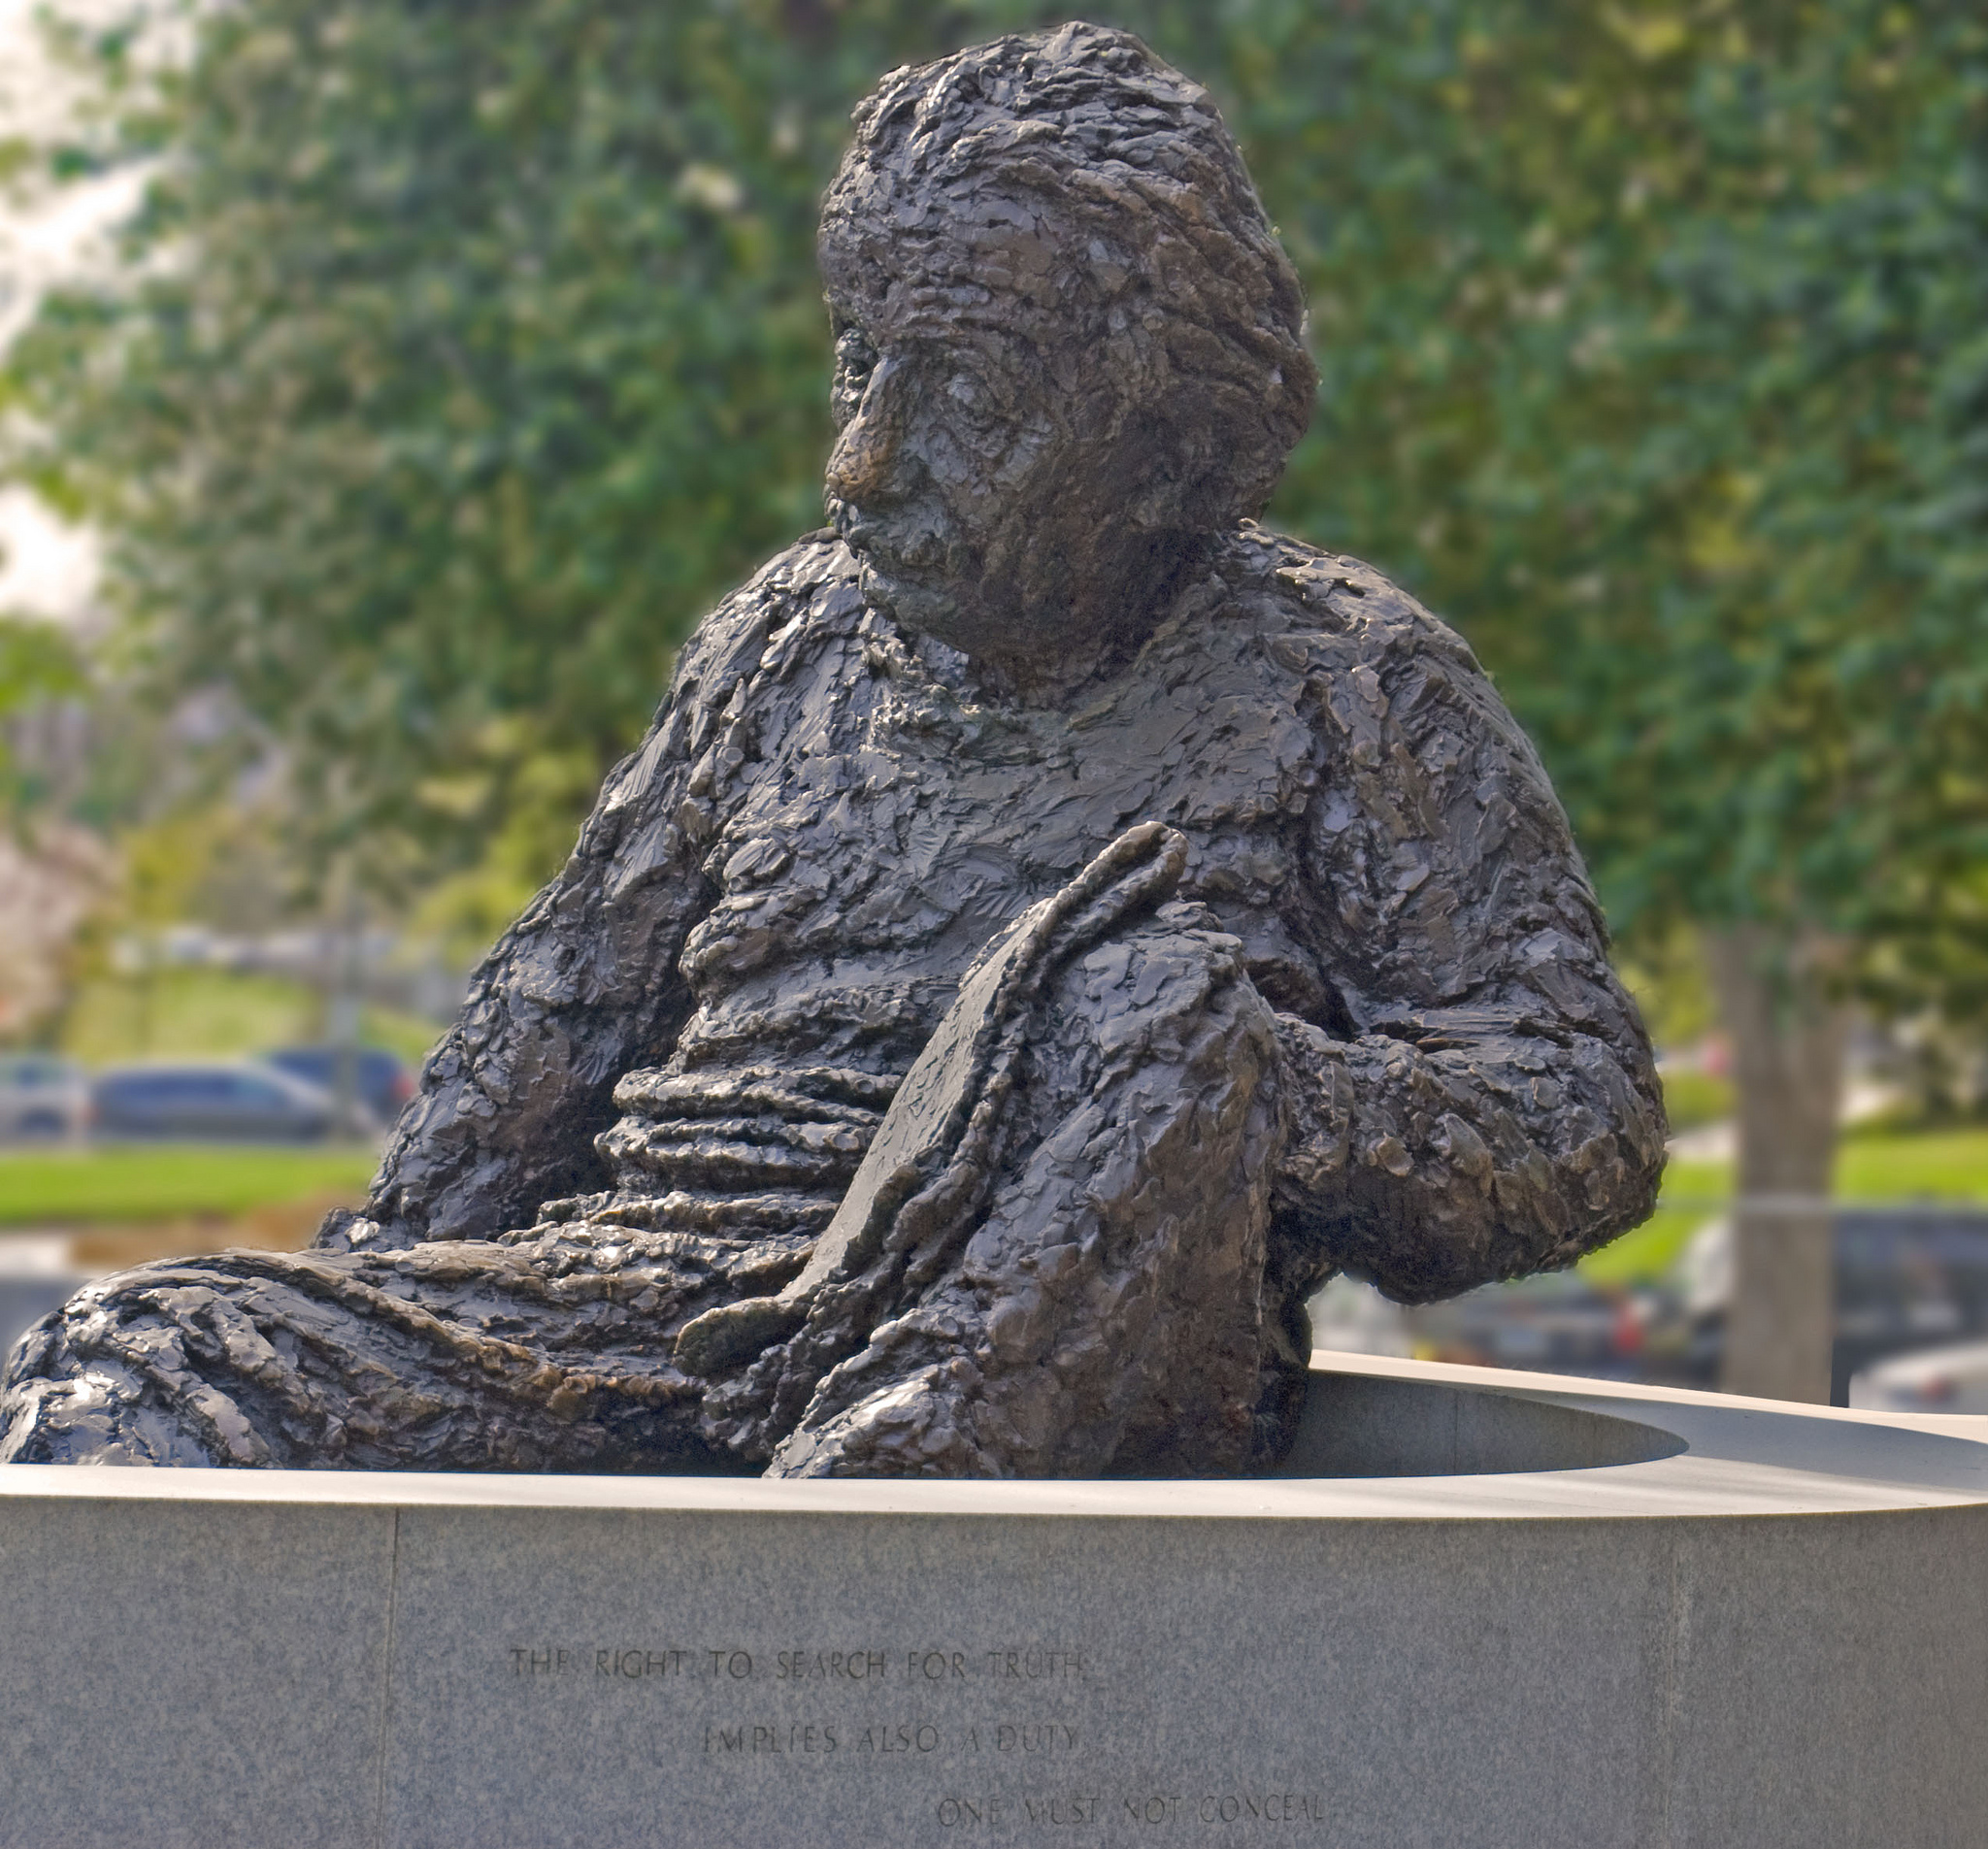 The Albert Einstein Memorial at the National Academy of Sciences in Washington DC. Picture: Ron Cogswell (CC BY 2.0)